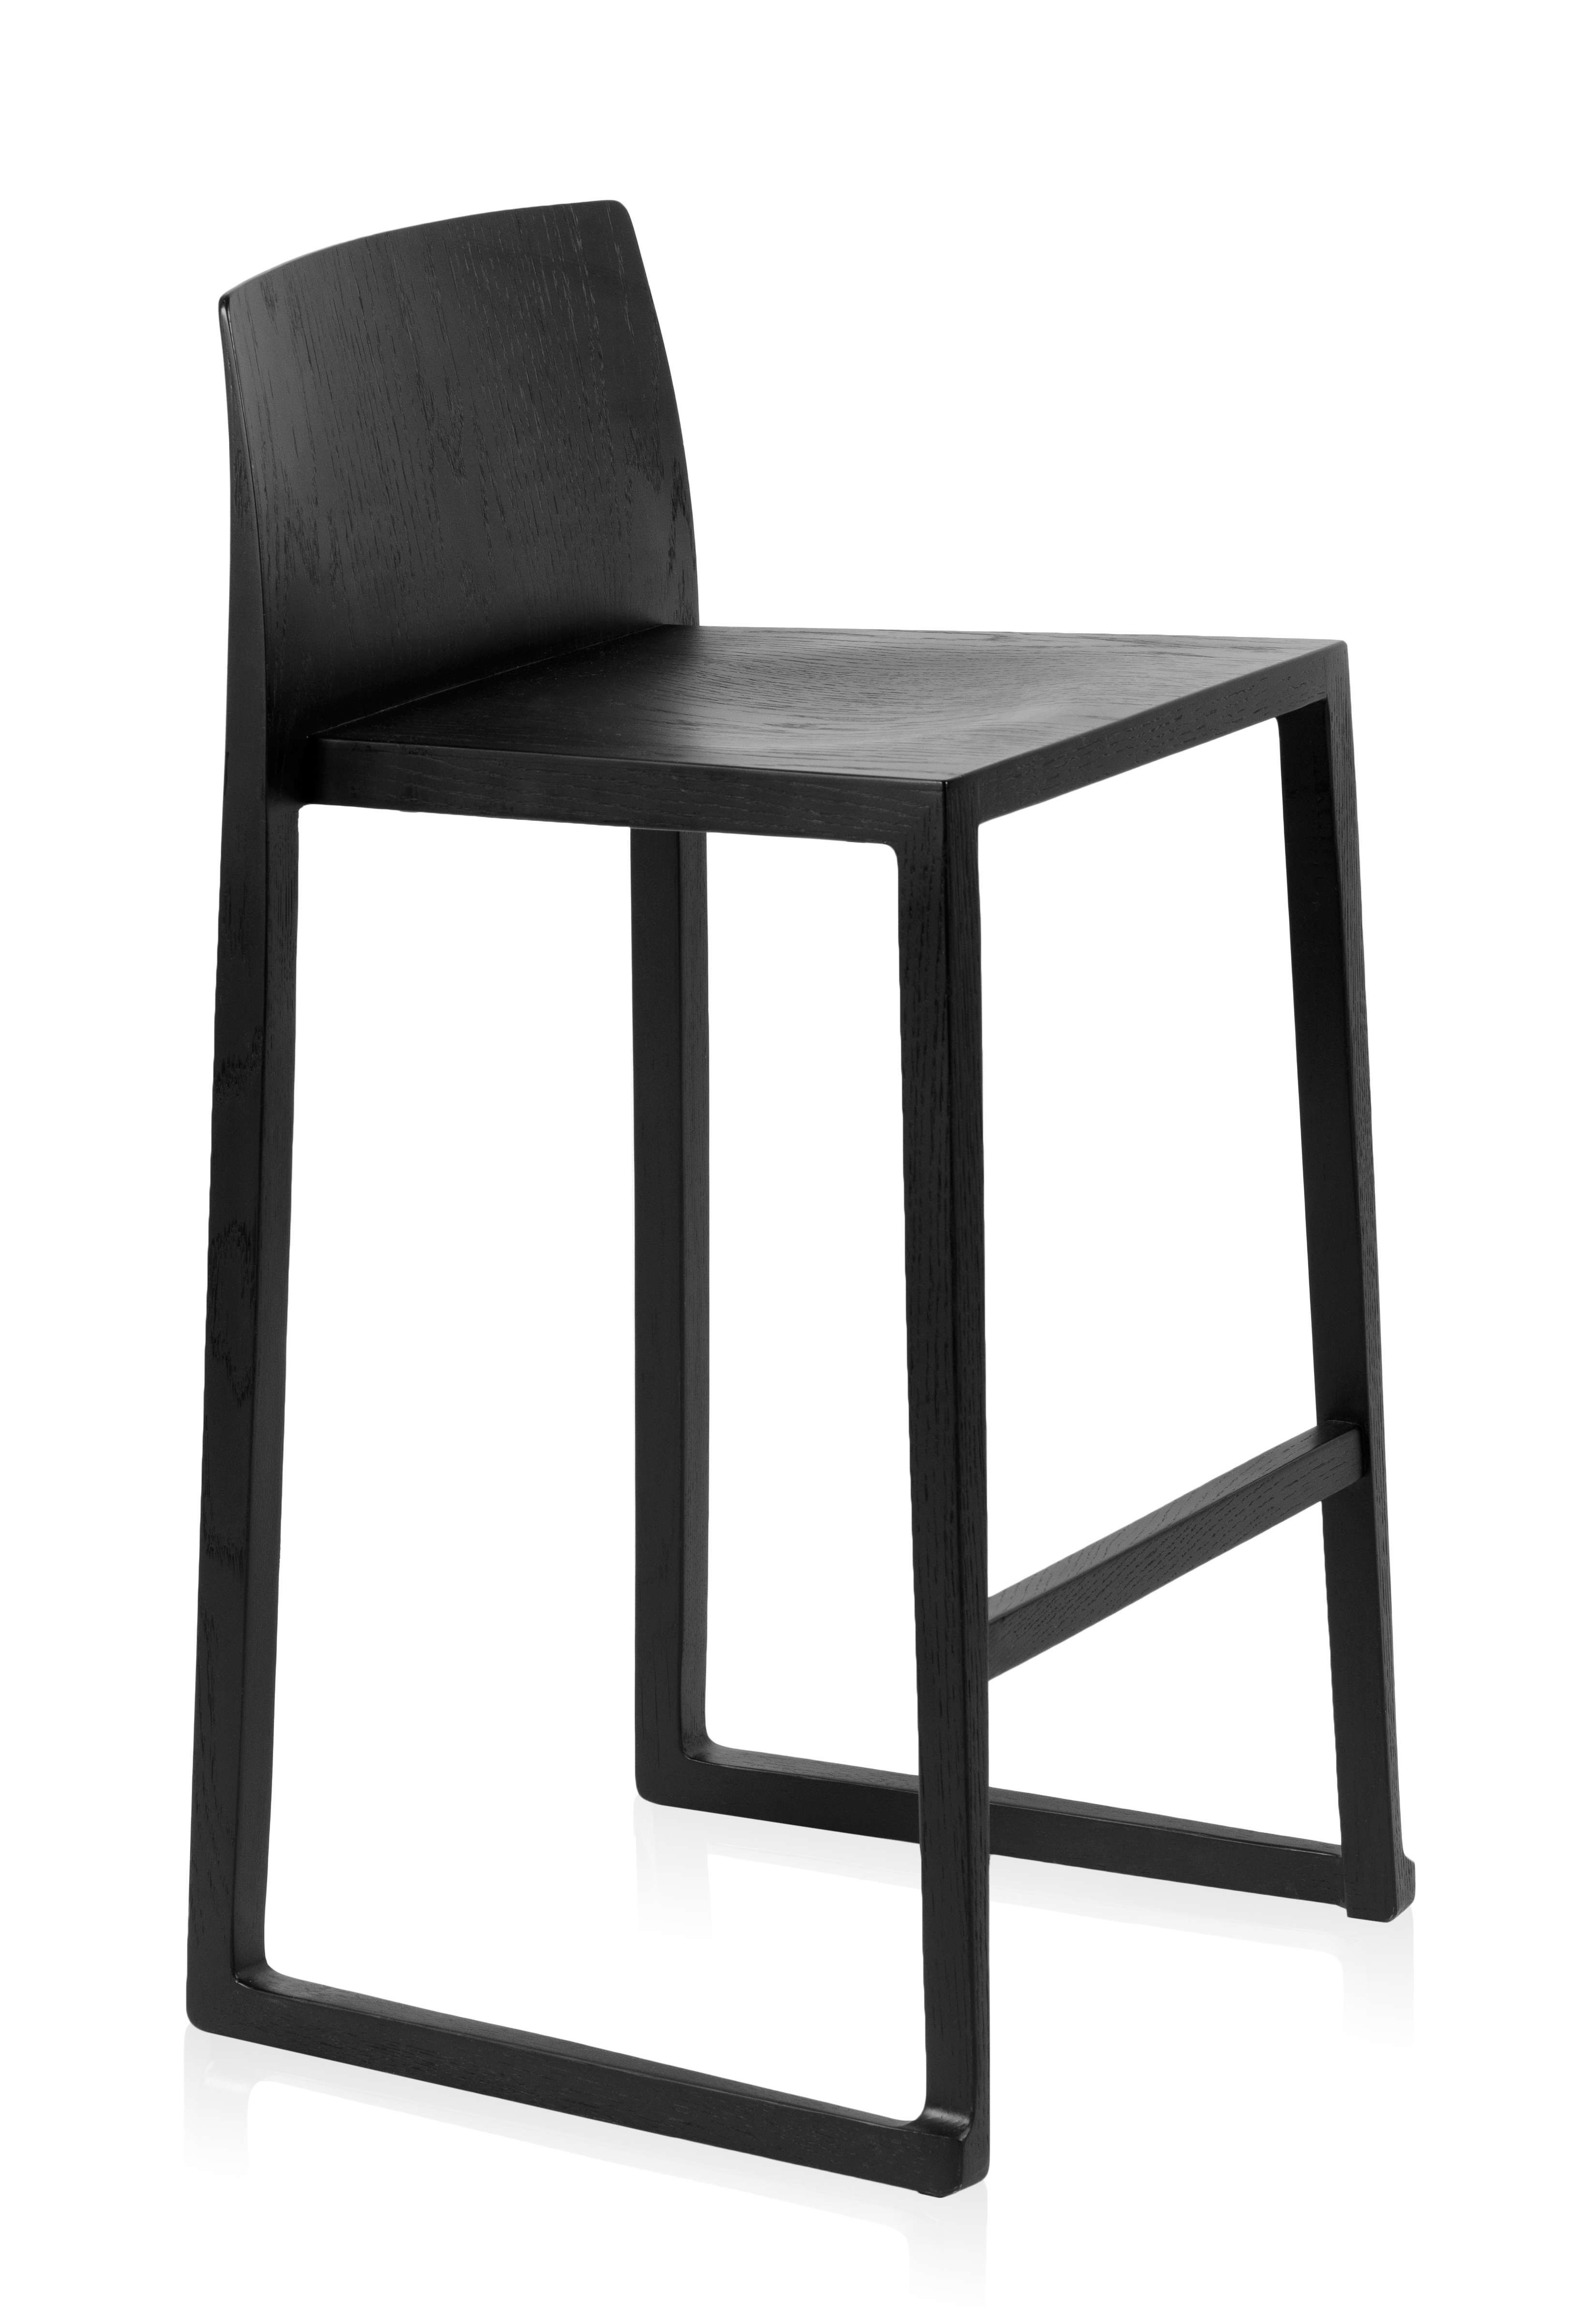 counter products gabby stools black stool pierce sch